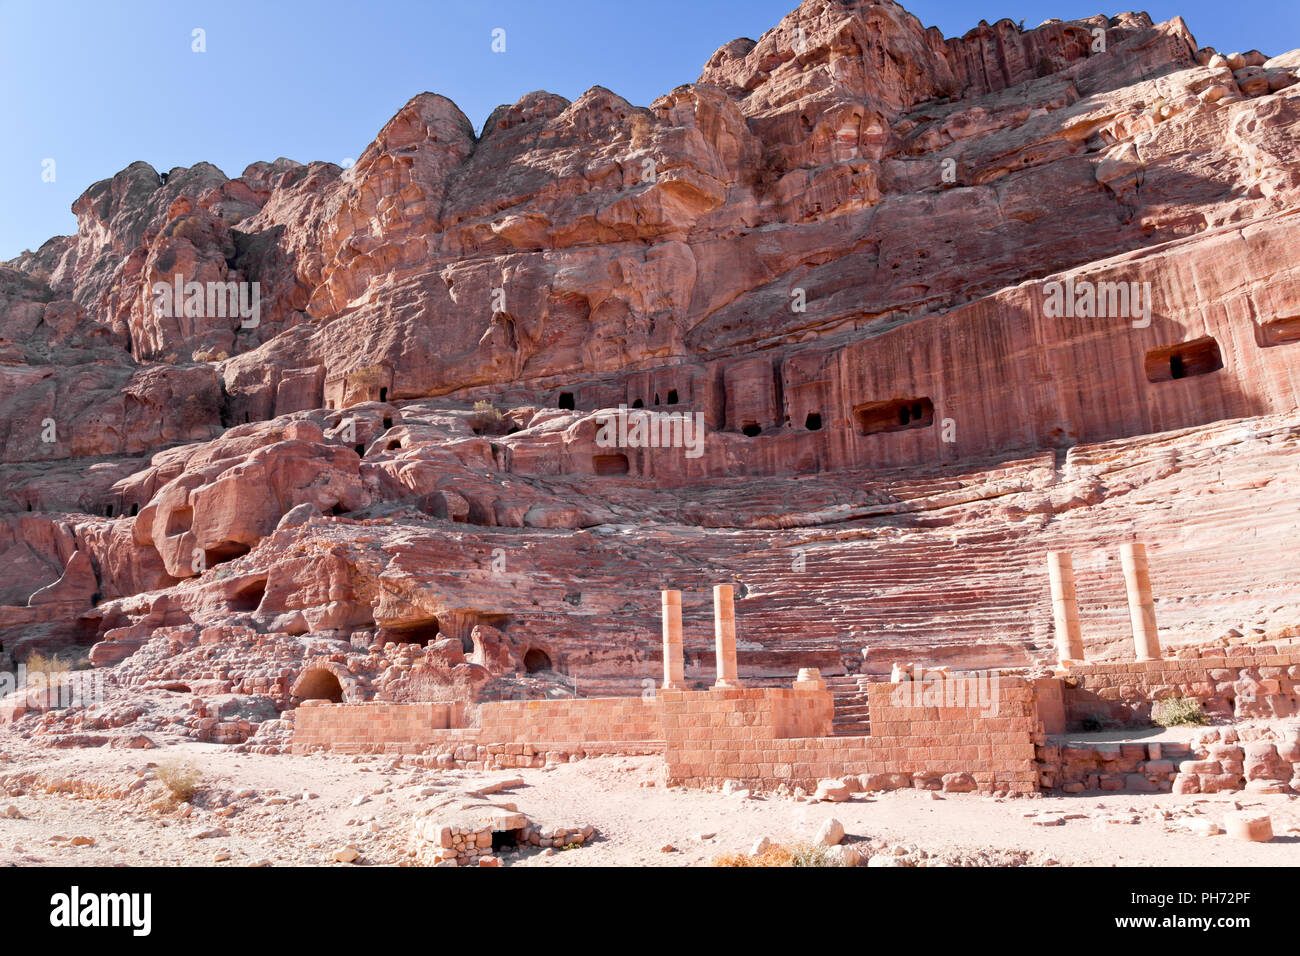 Amphitheater of petra, jordan Stock Photo